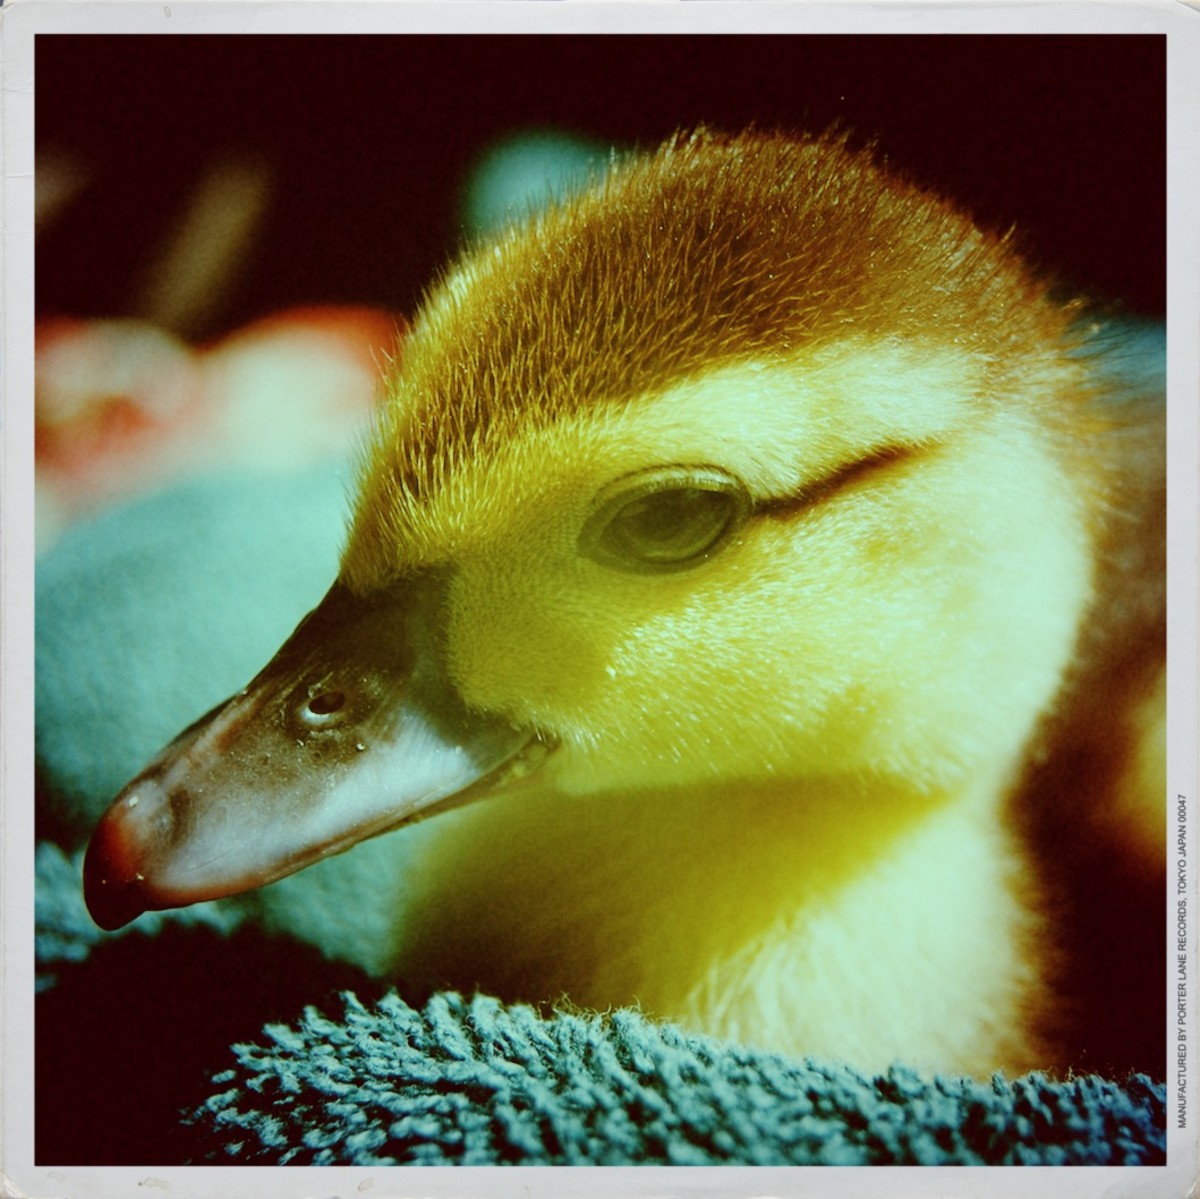 Sao-Ree, an imprinted muscovy duckling who grew up to be a blue drake.